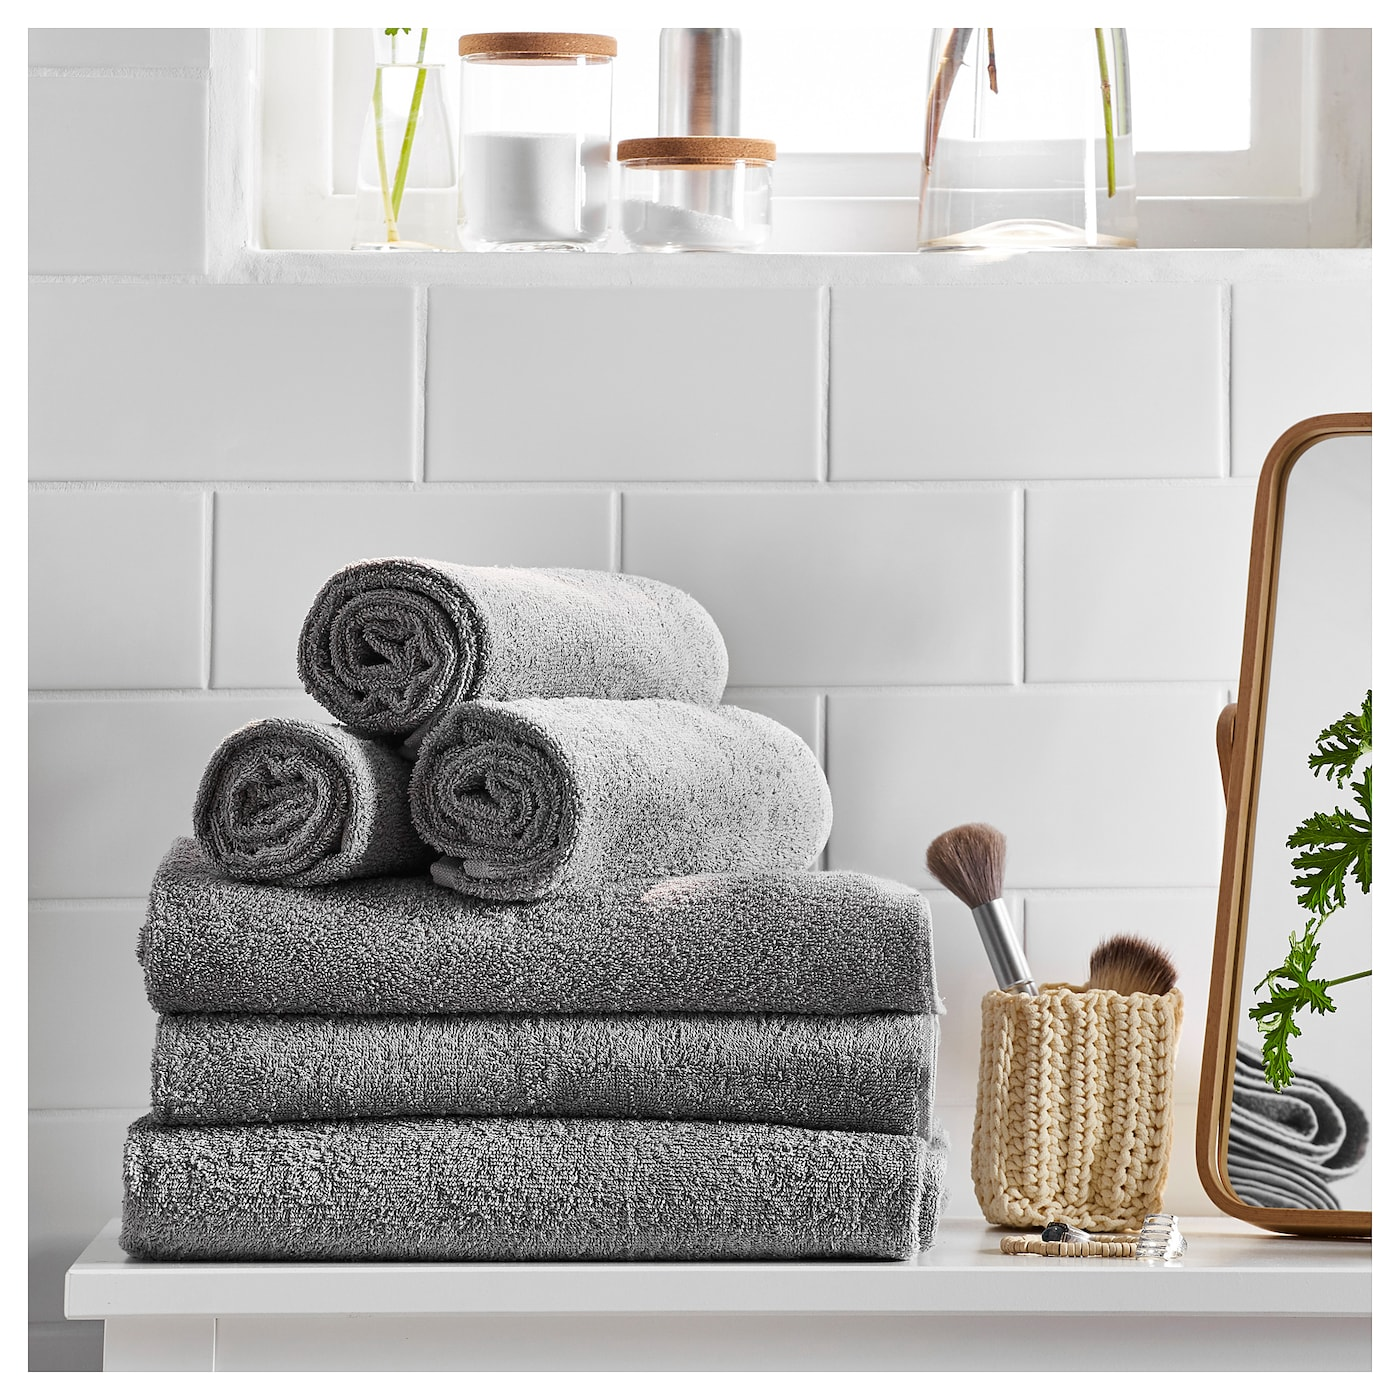 IKEA HÄREN bath towel The long, fine fibres of combed cotton create a soft and durable towel.